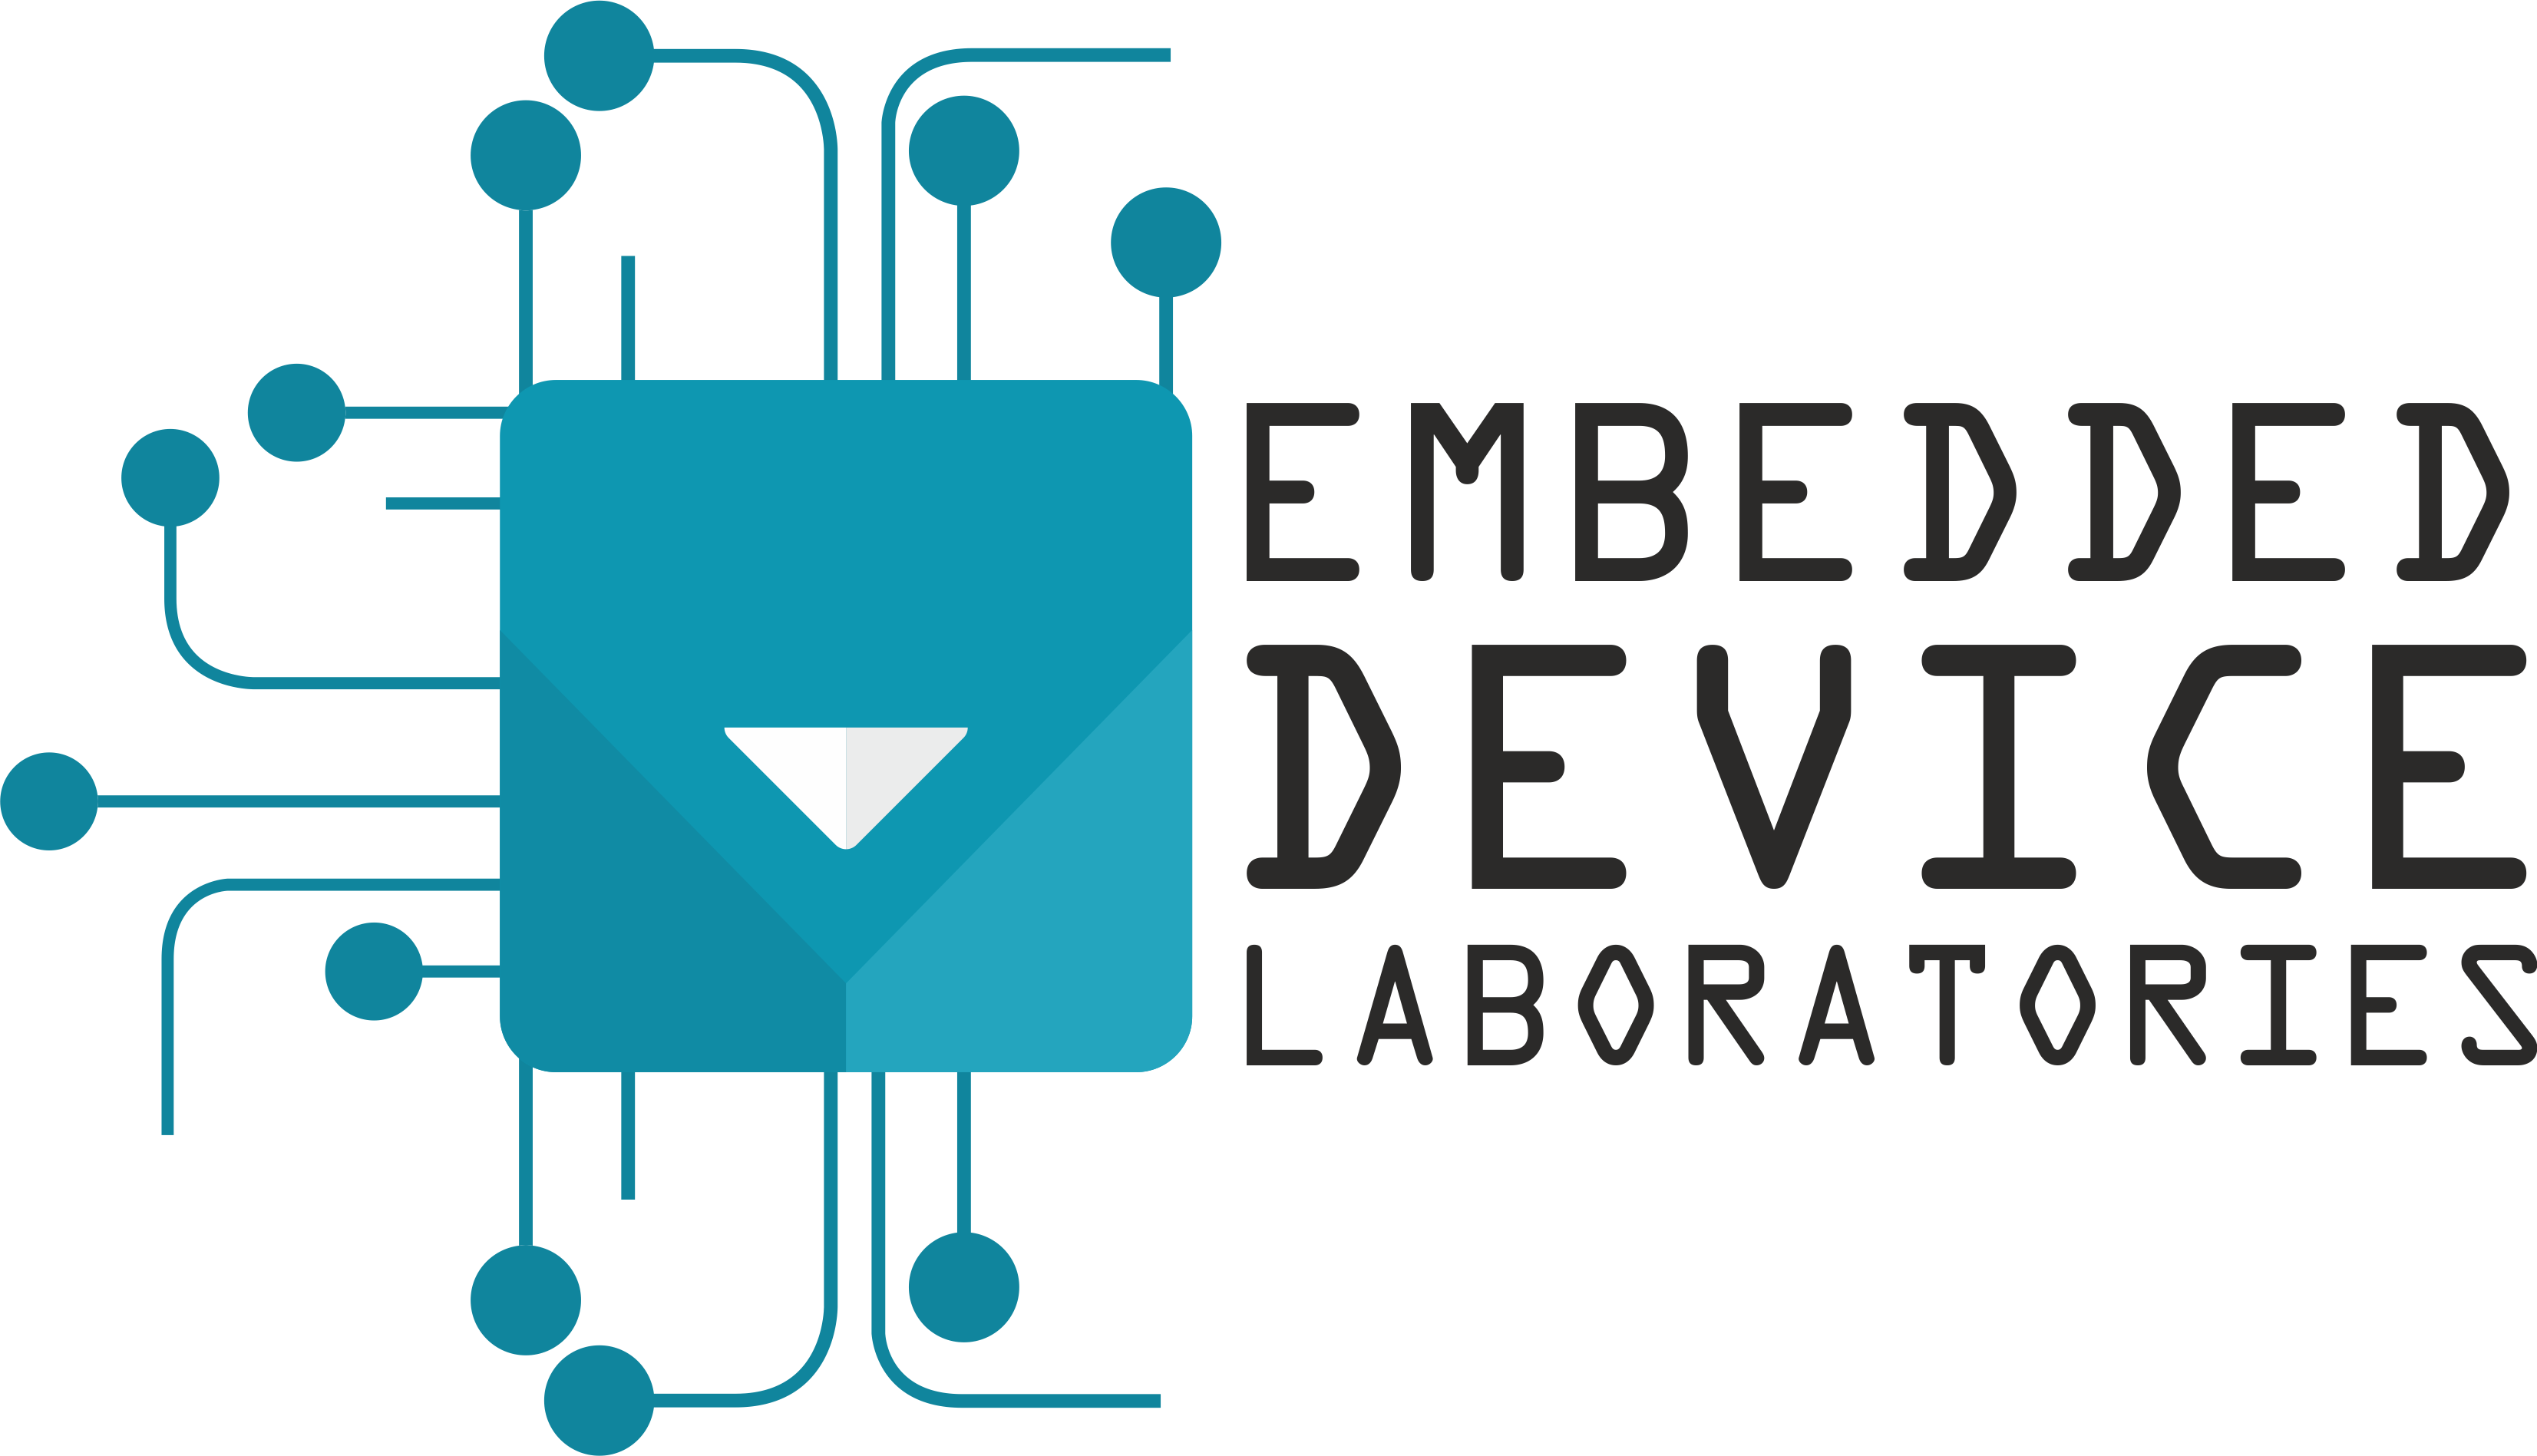 Embedded device laboratories